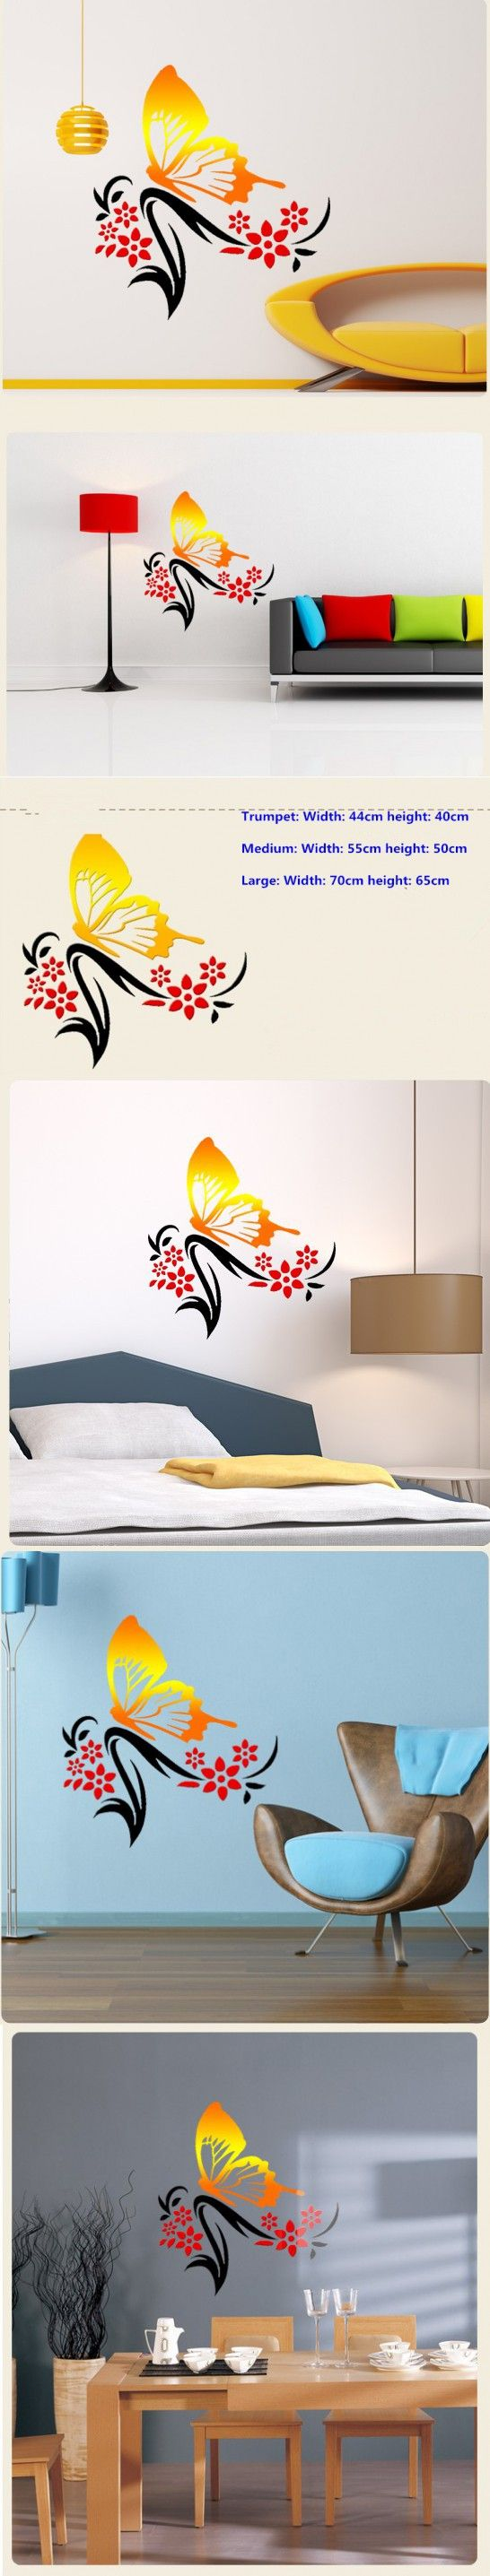 Wall decal new york letter frame cheap stickers world discount - Diy Creative Wall Stickers Butterfly Flower Minimalist Bedroom Bedside Background Wall Living Room Decoration